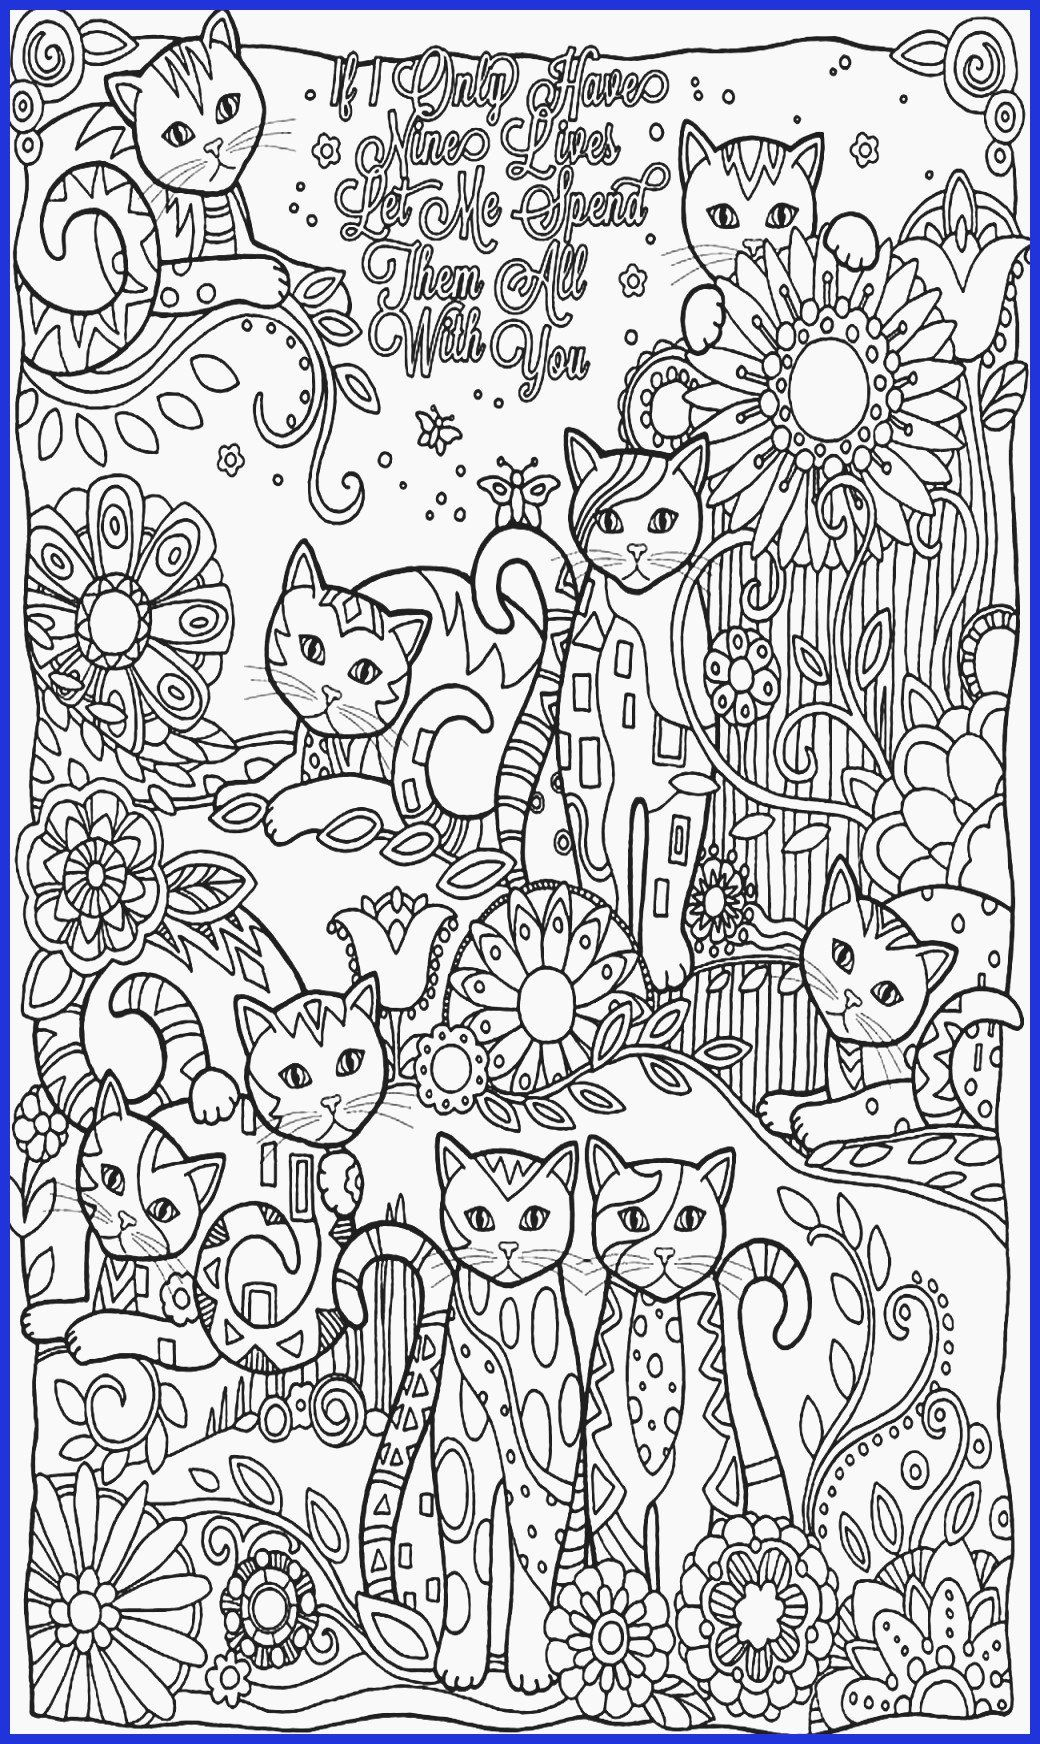 Coloring Activities For Grade 2 Unique 24 Descendants 2 Coloring Pages Collection Color In 2020 Unicorn Coloring Pages Coloring Pages Inspirational Bear Coloring Pages